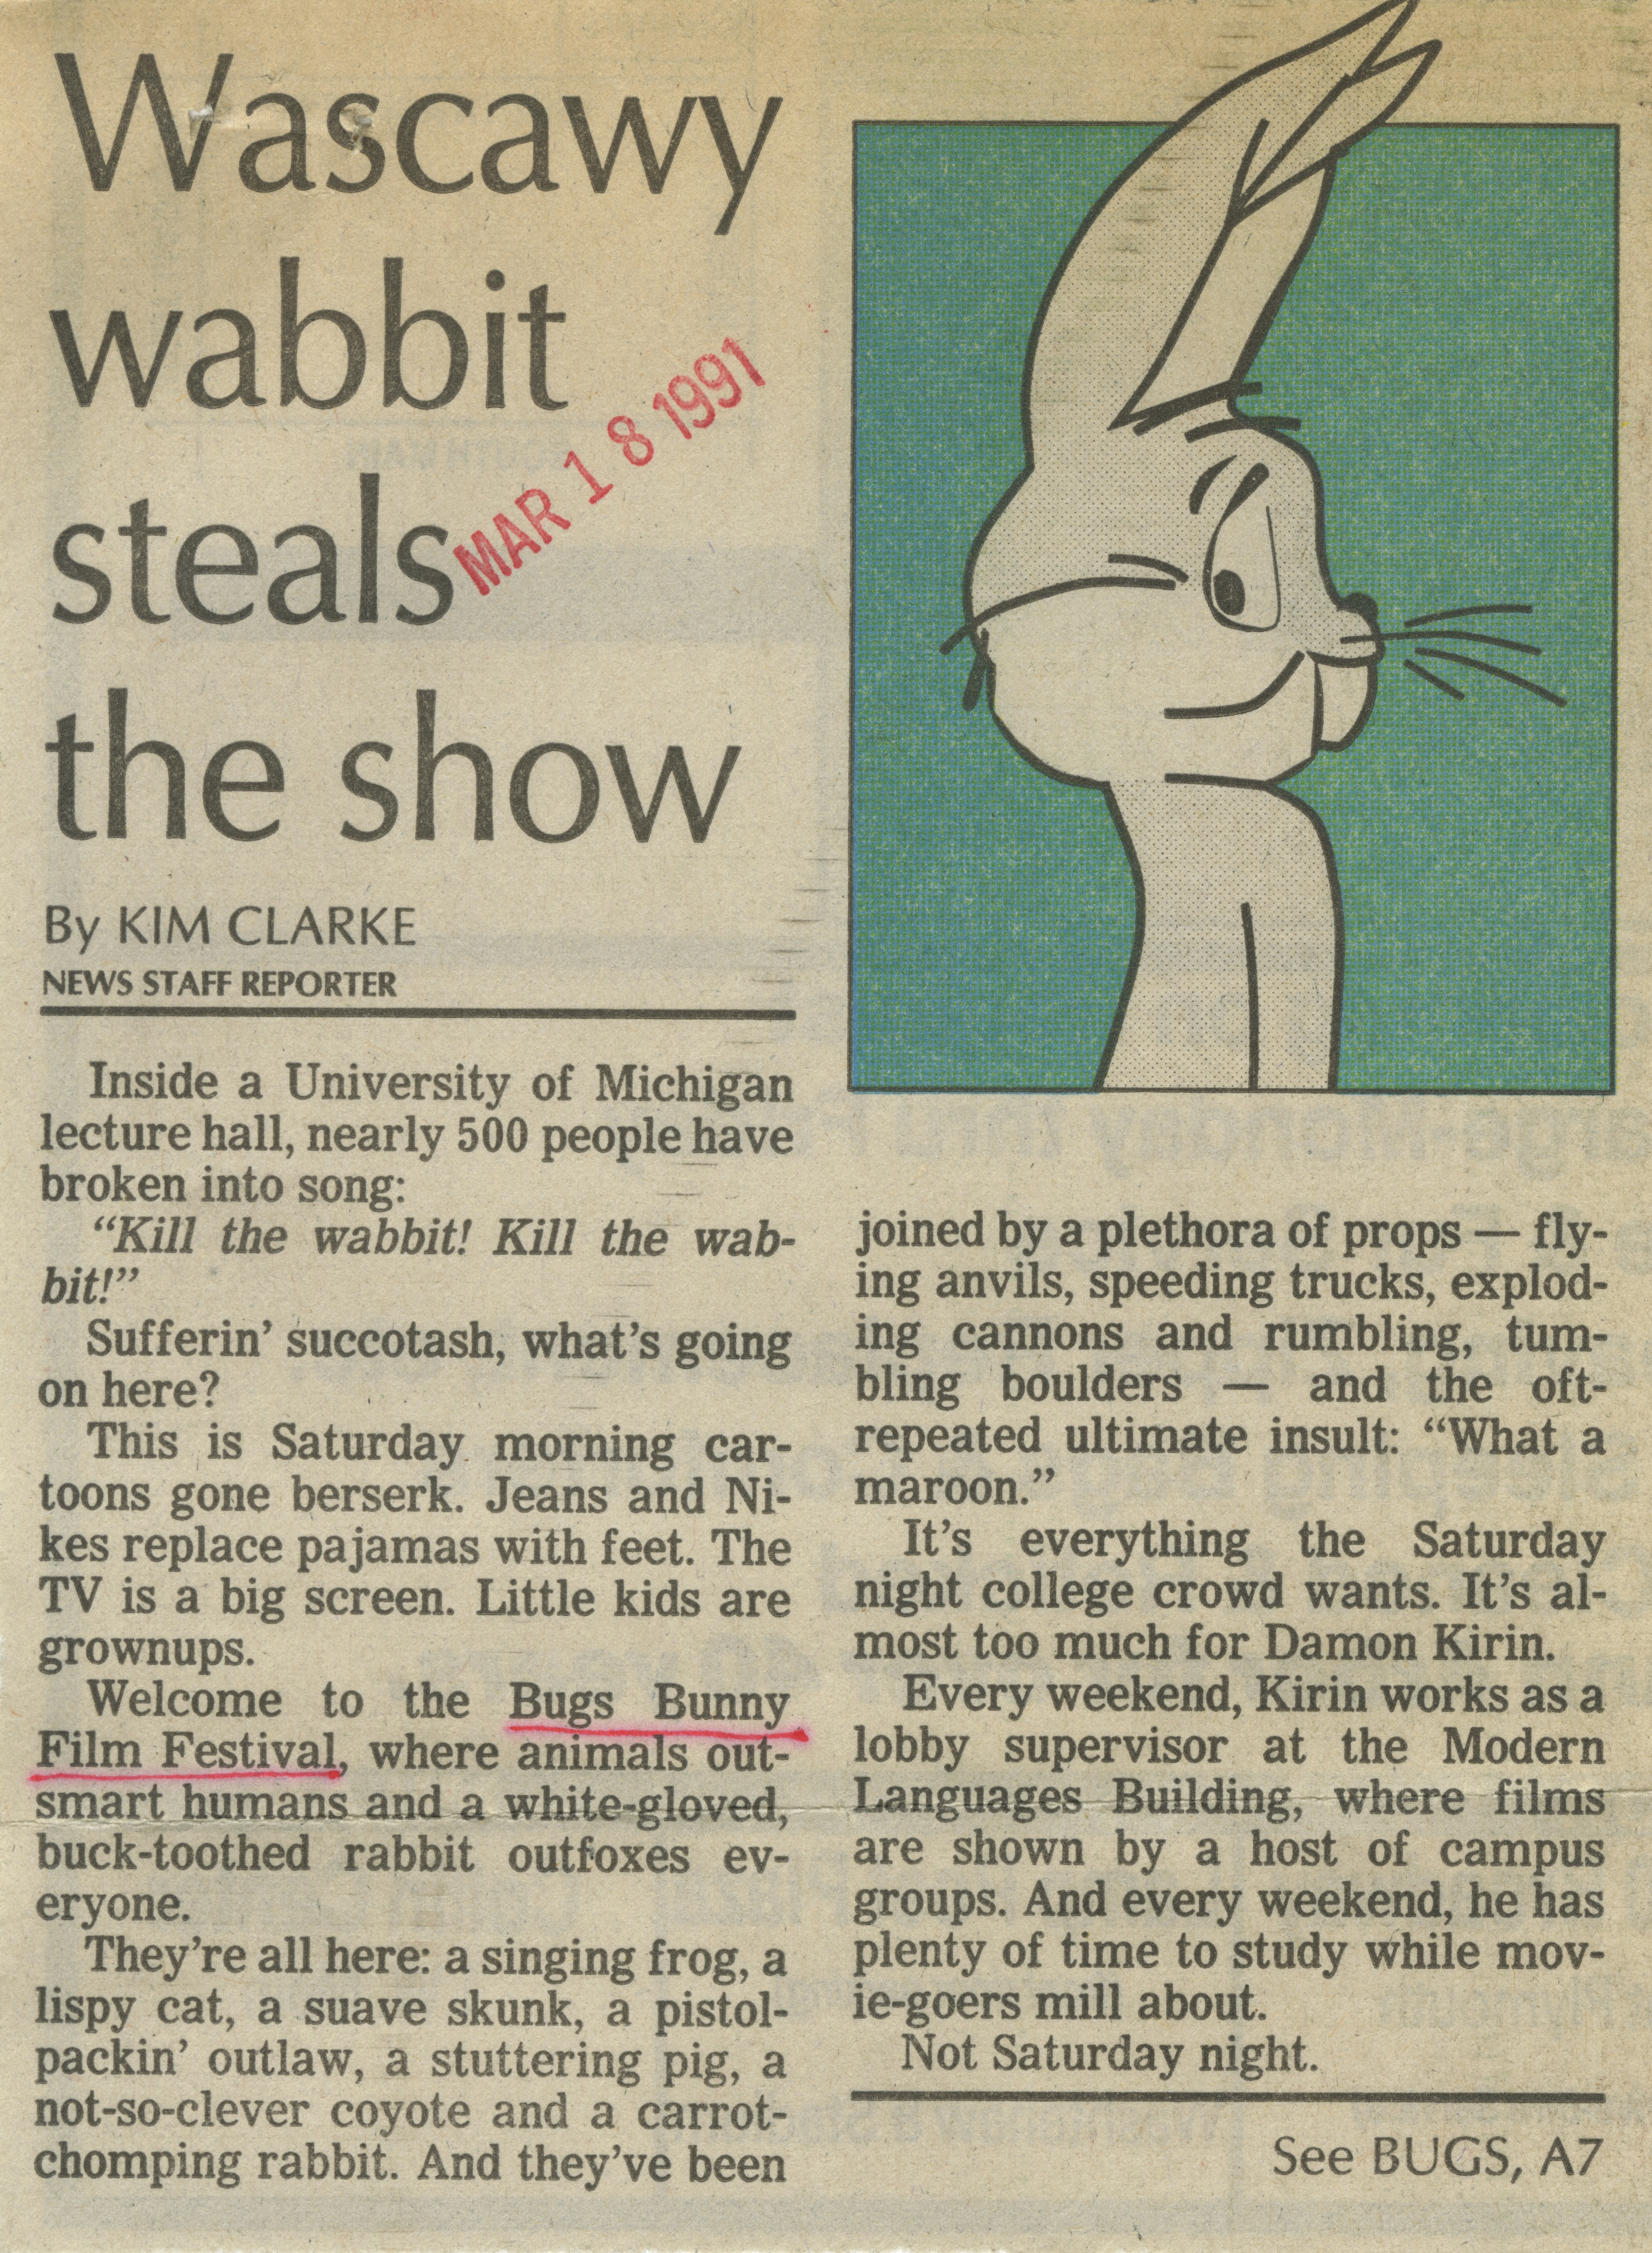 Wascawy Wabbit Steals The Show image